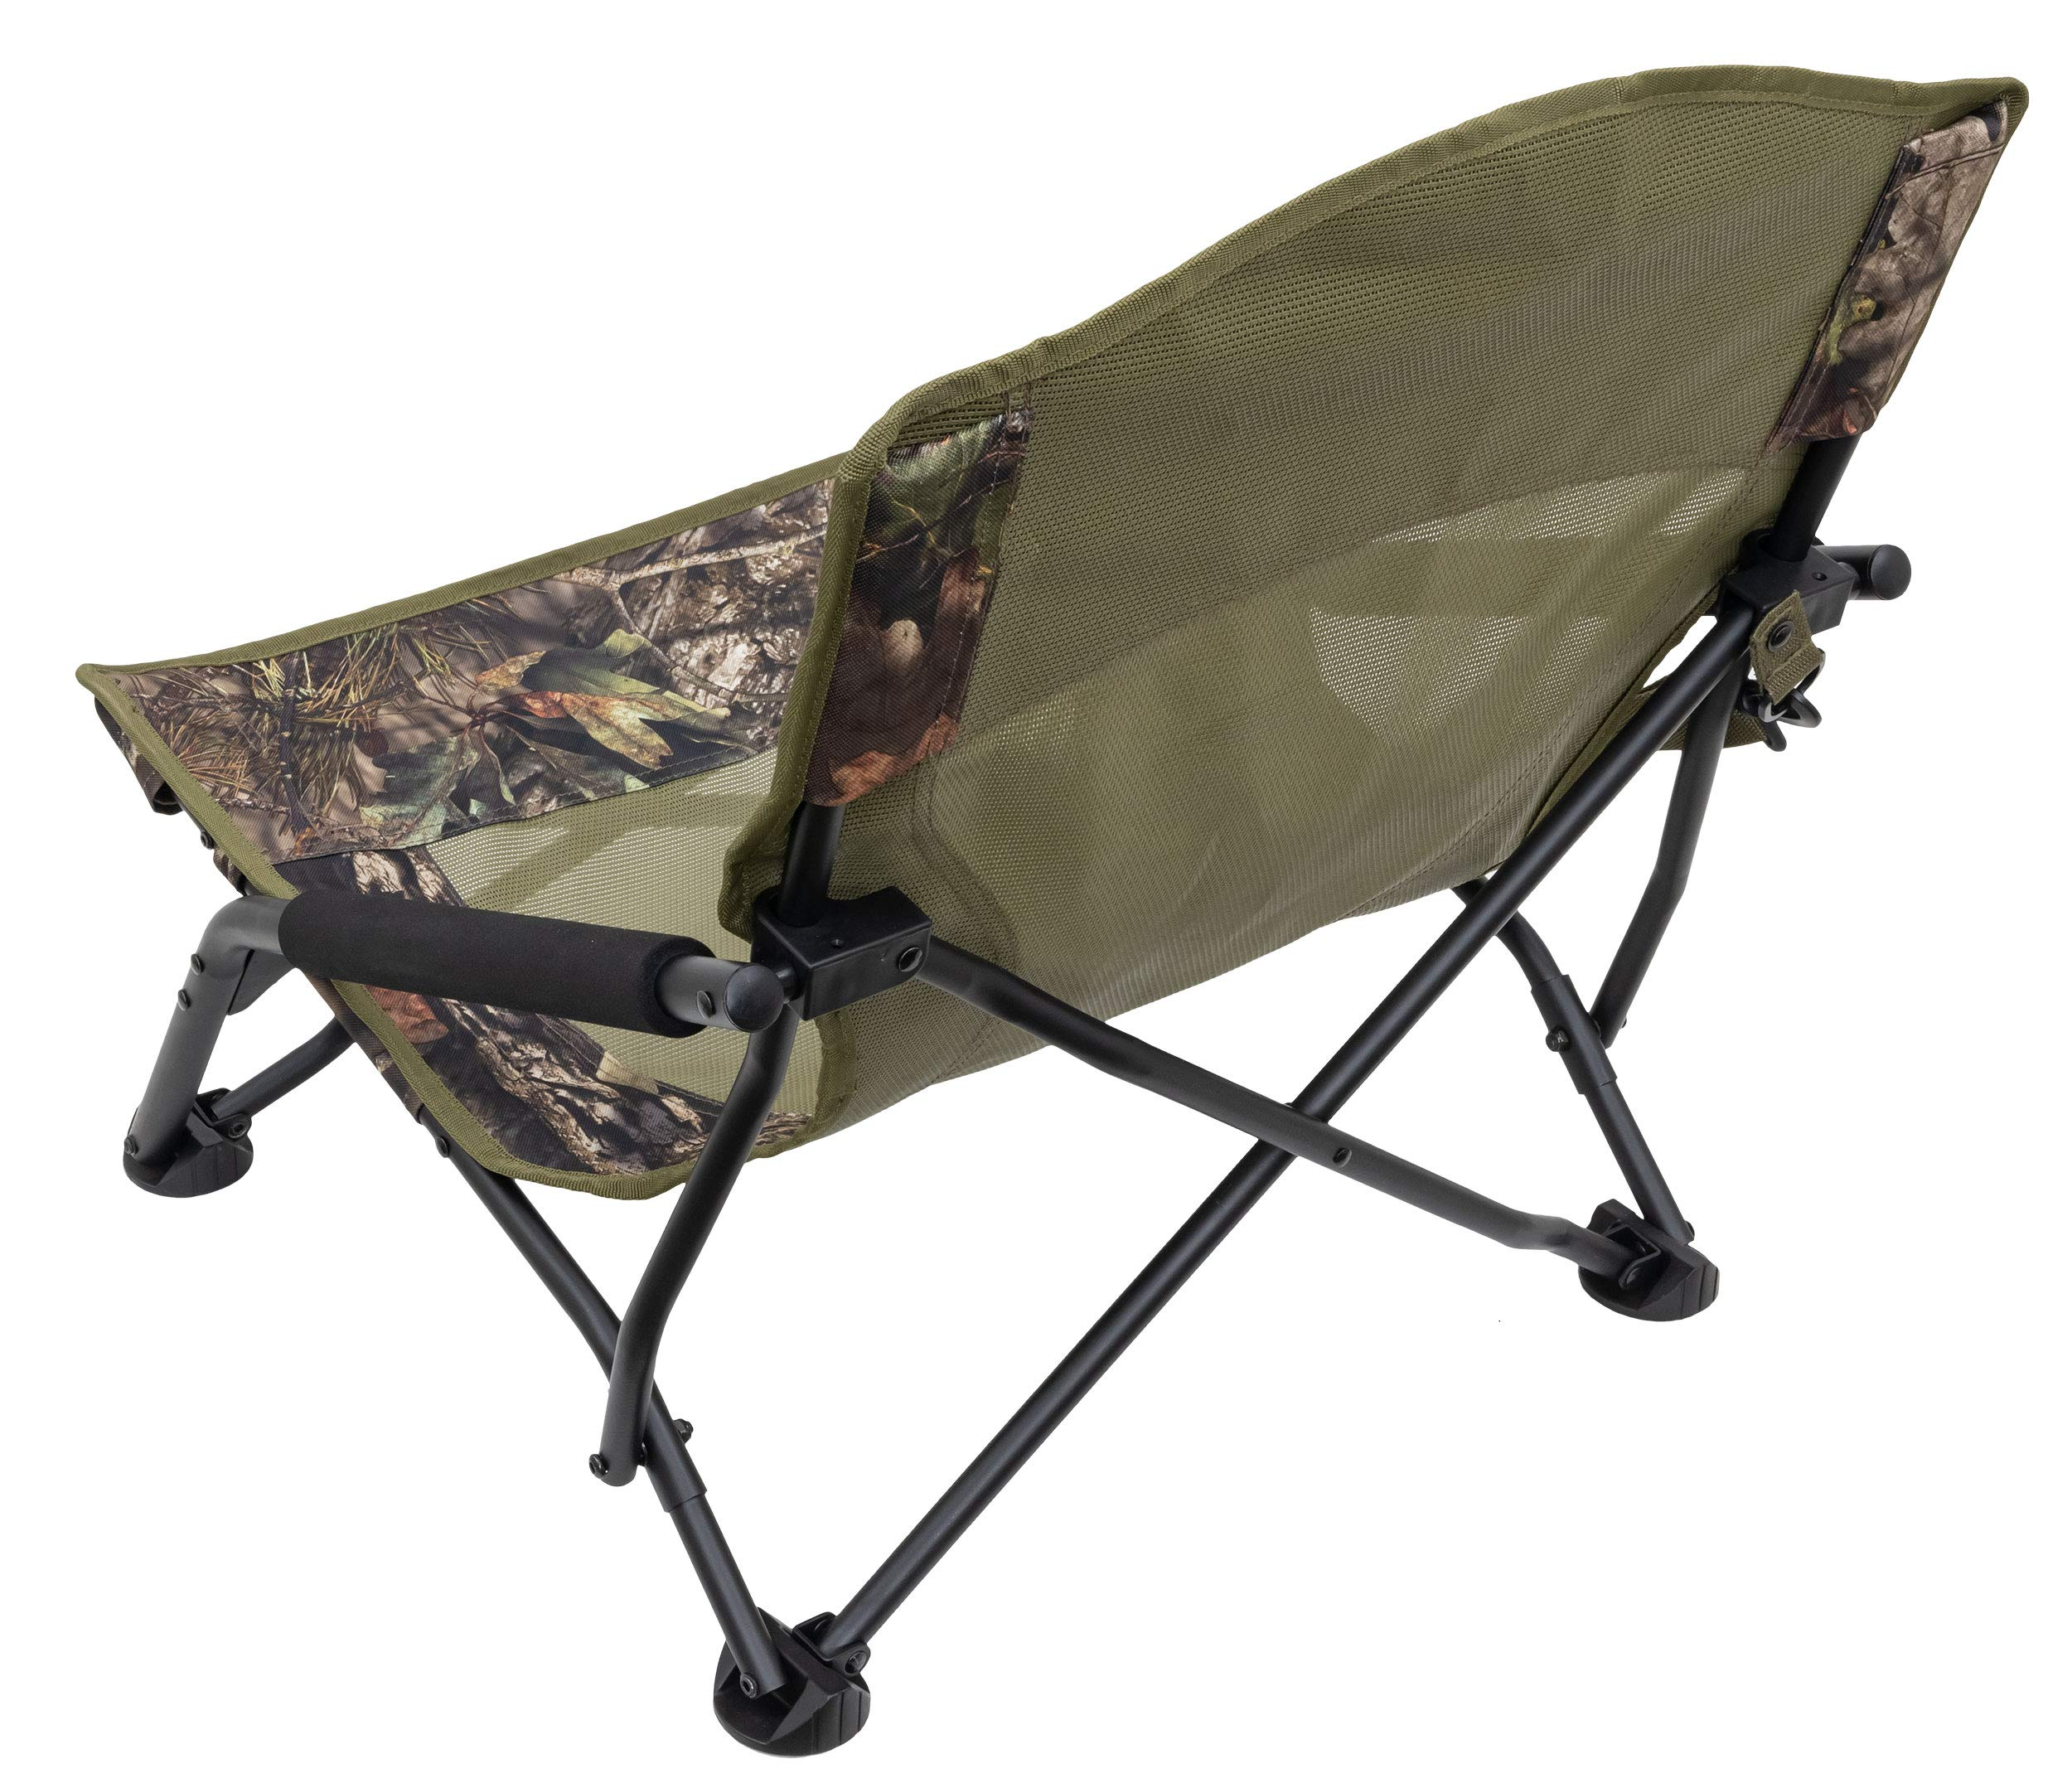 Remarkable Browning Camping Strutter Hunting Chair Fifth Degree Inzonedesignstudio Interior Chair Design Inzonedesignstudiocom